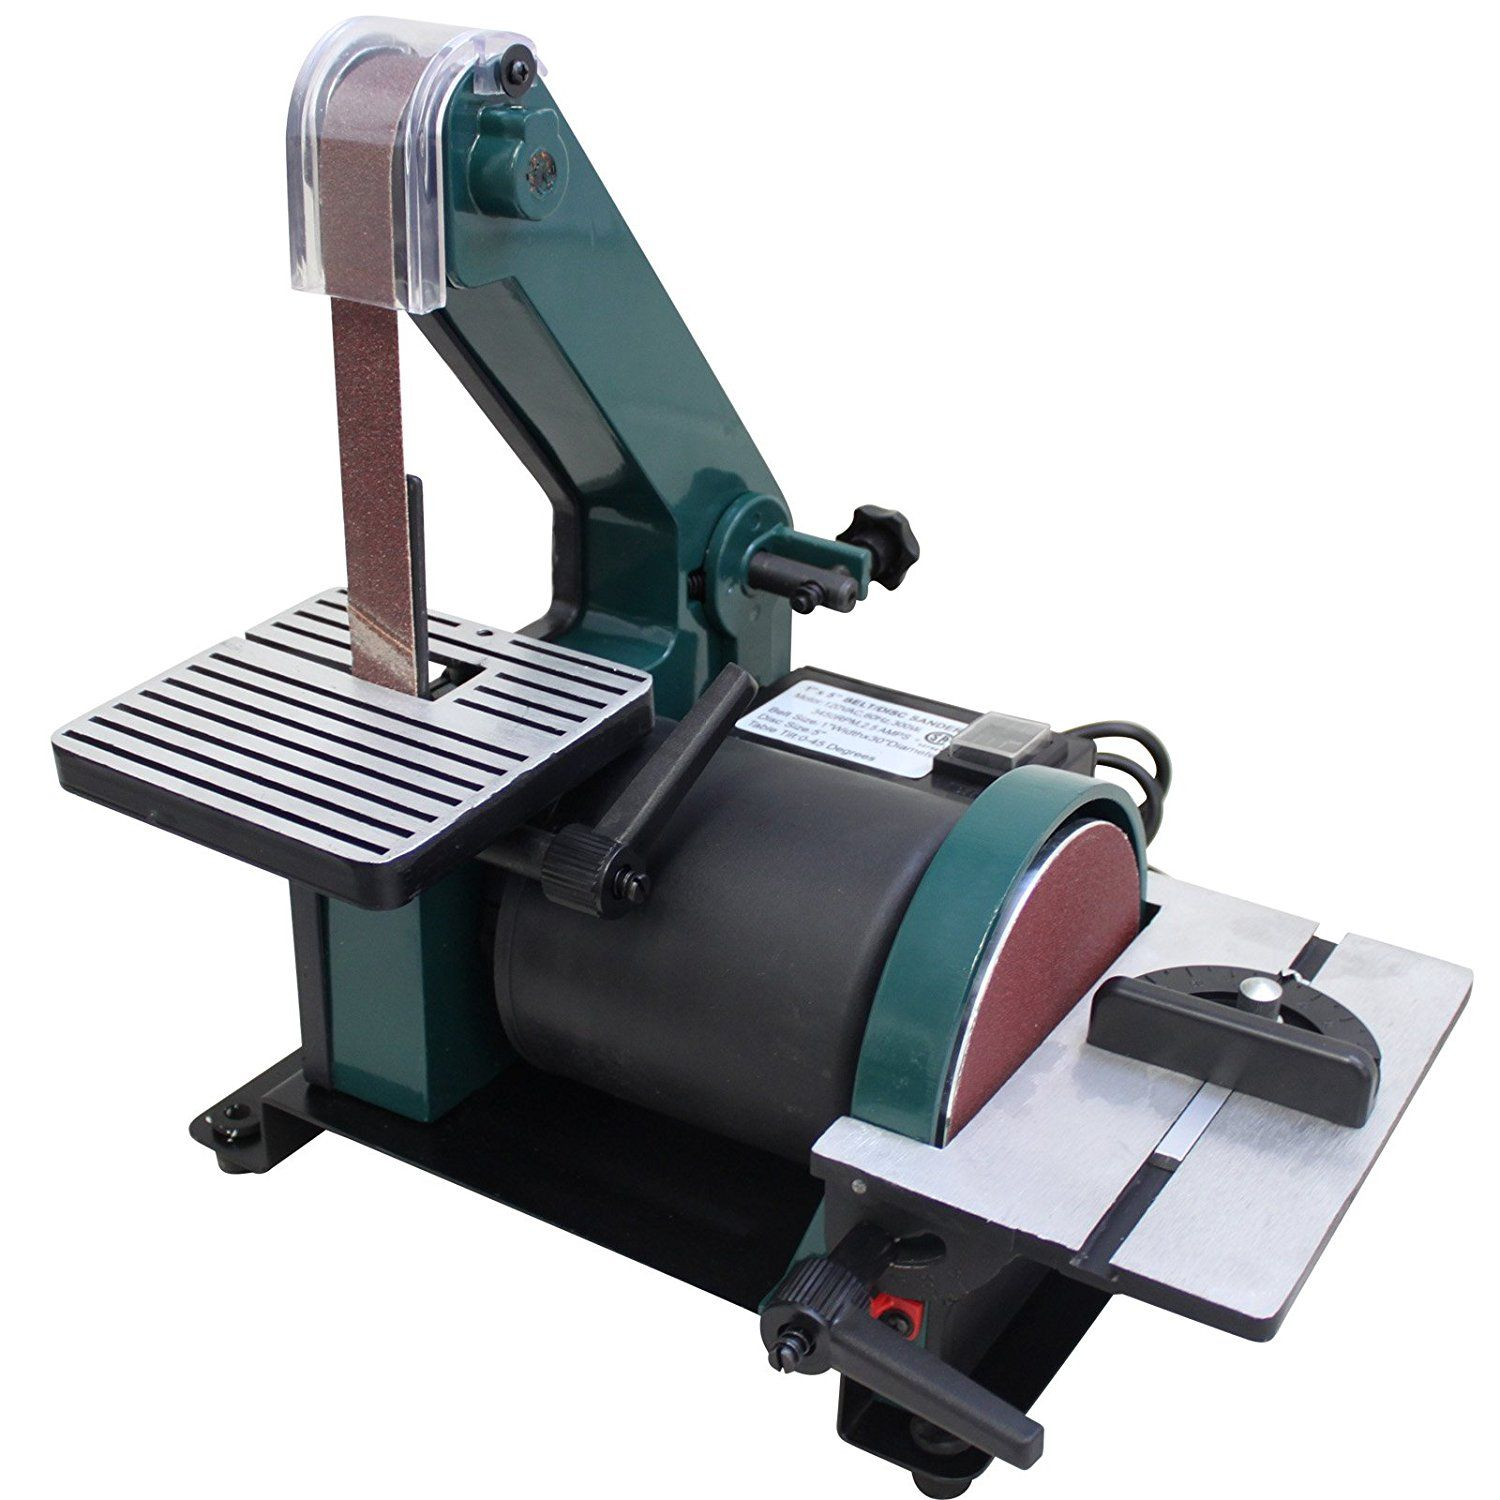 Magnificent Asc 1X30 Mini Belt 3400 Rpm And 5 Disc Sander Amazon Andrewgaddart Wooden Chair Designs For Living Room Andrewgaddartcom